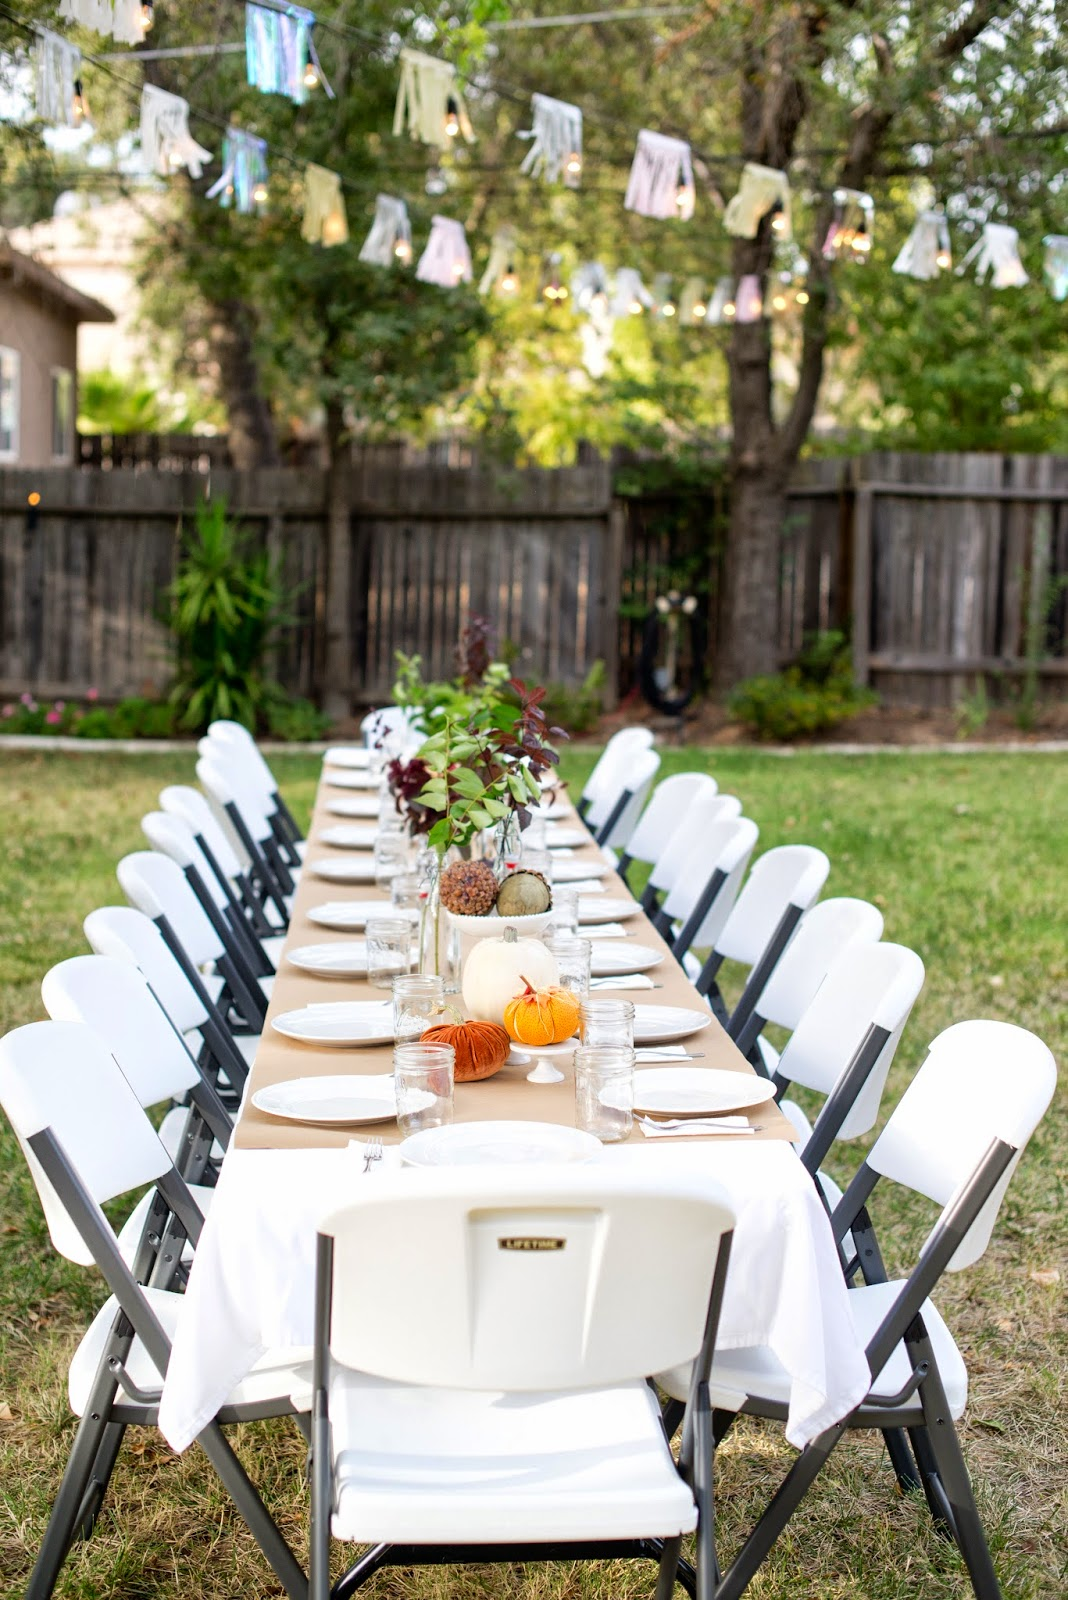 Domestic fashionista fall backyard entertaining birthday Fall decorating ideas for dinner party